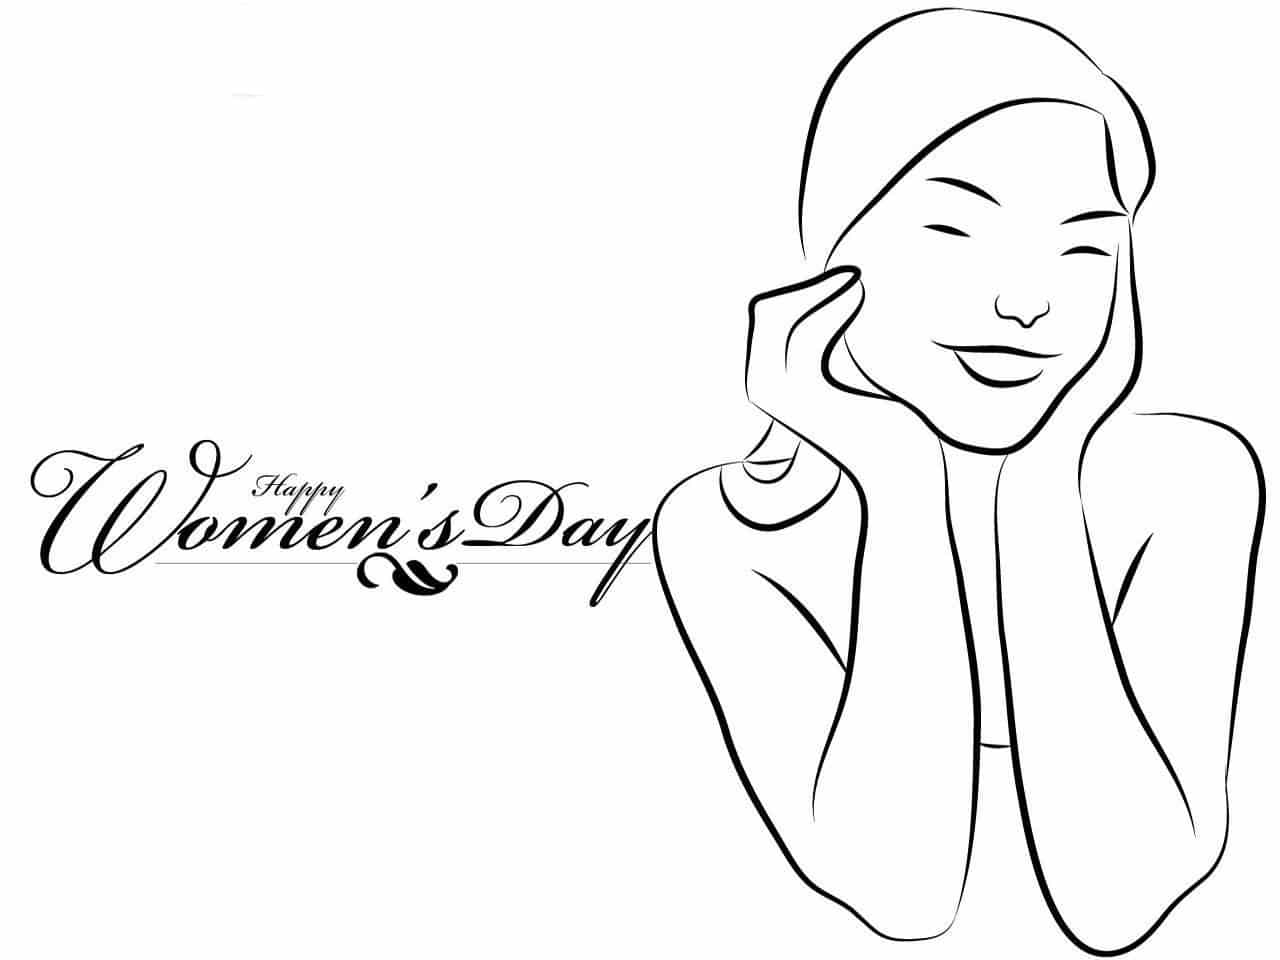 Cliparts of Happy International Women's Day